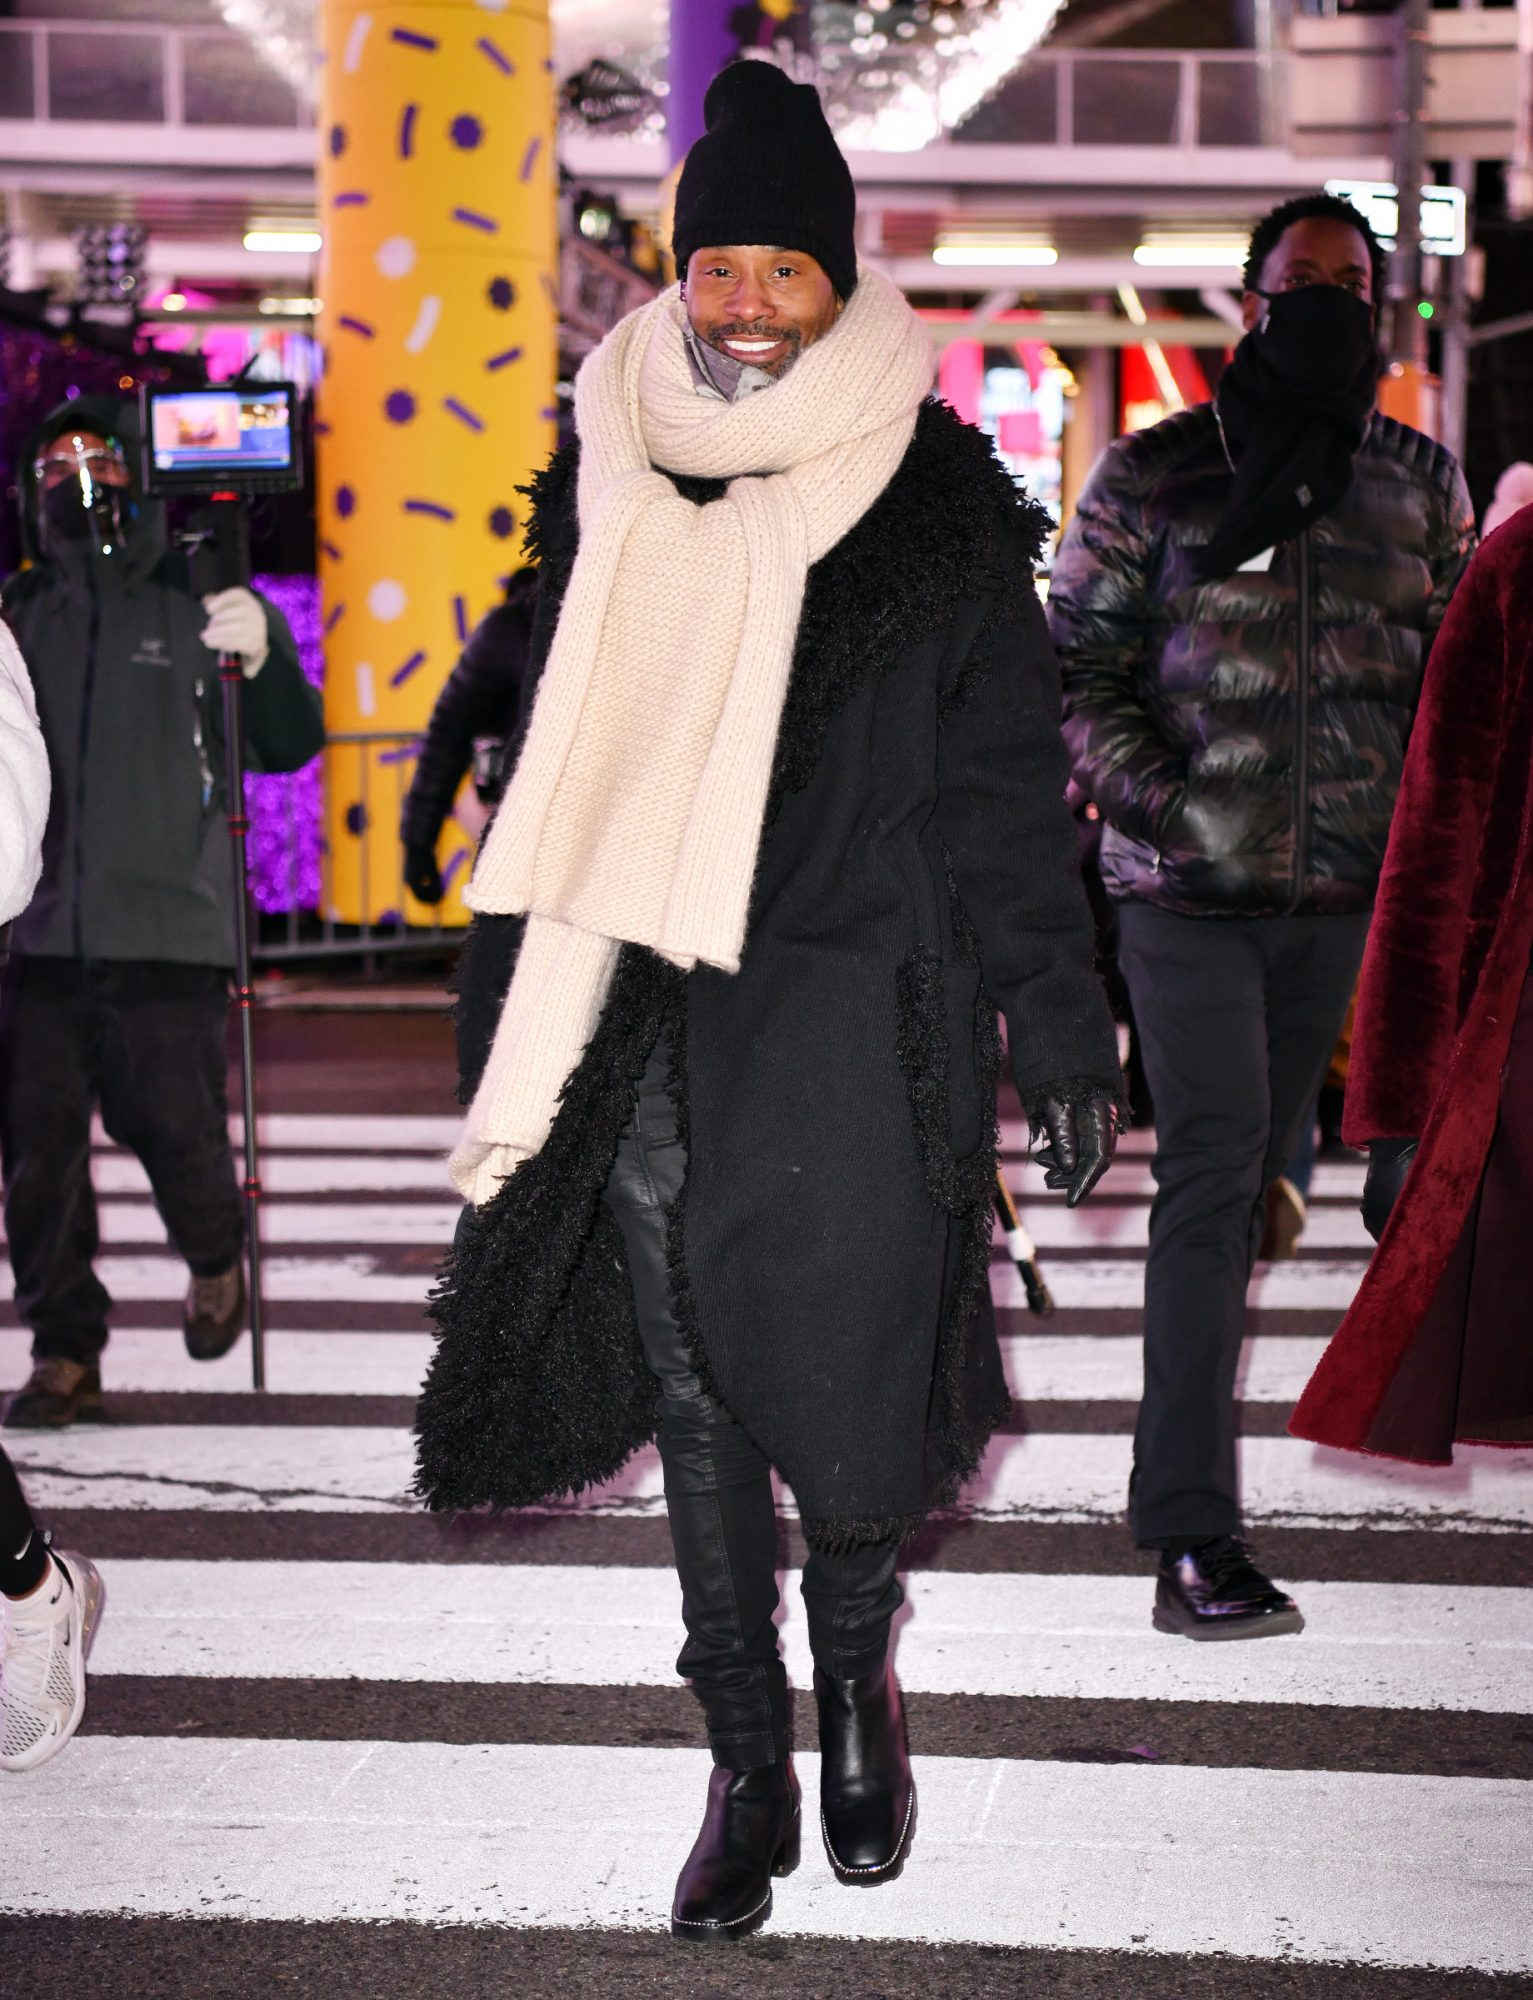 Billy Porter rehearses for New Year's Eve 2021 in Times Square on December 29, 2020 in New York City